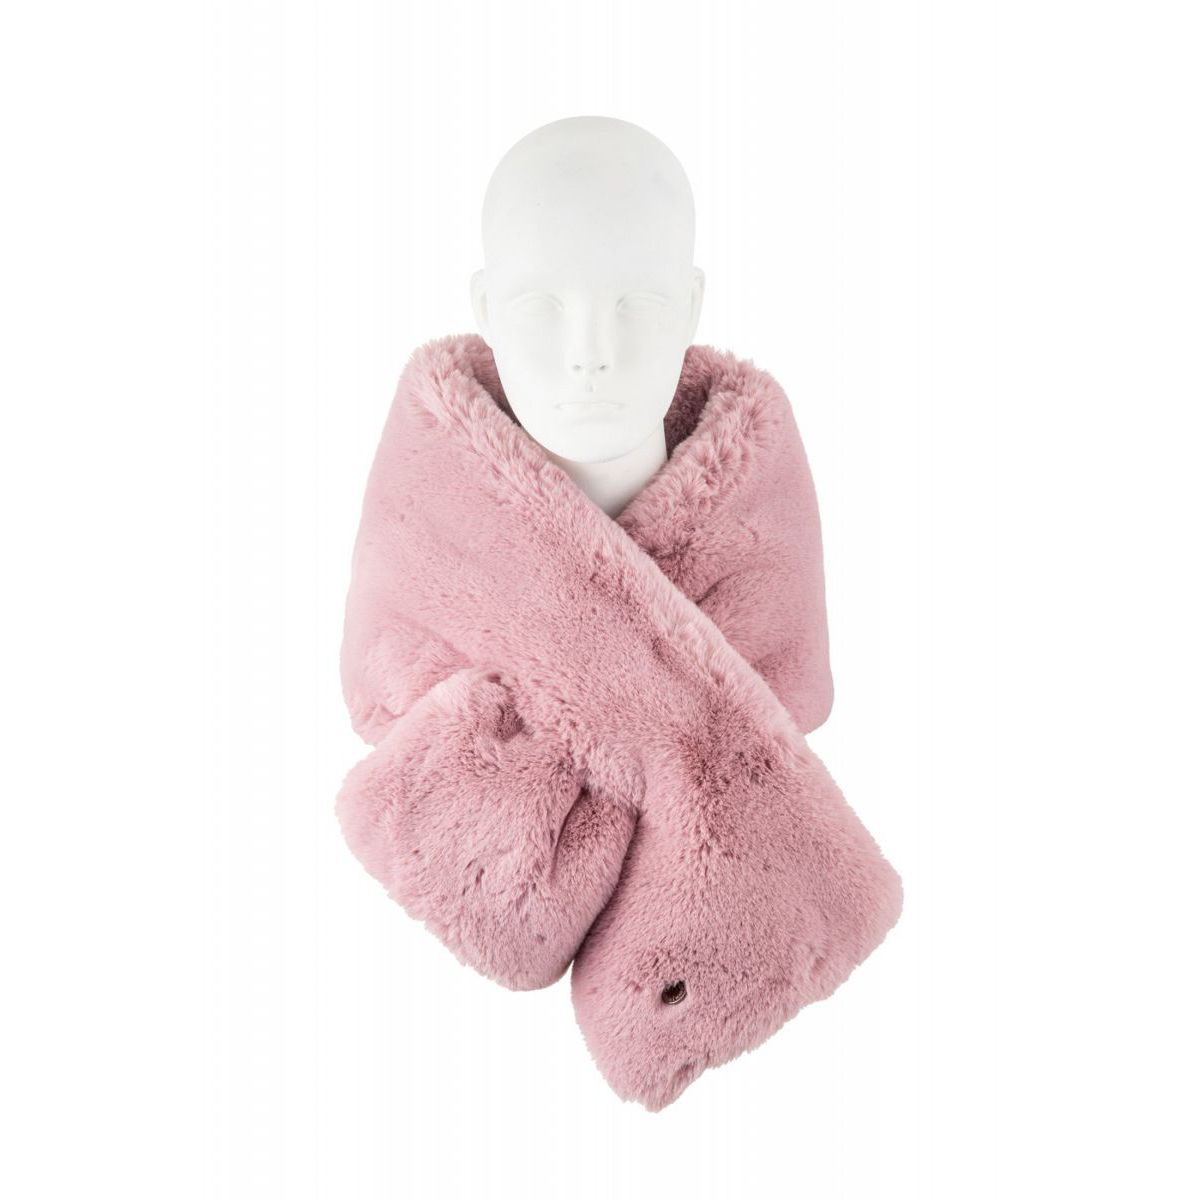 STYLE8915 SCARF Pink Alessia Massimo